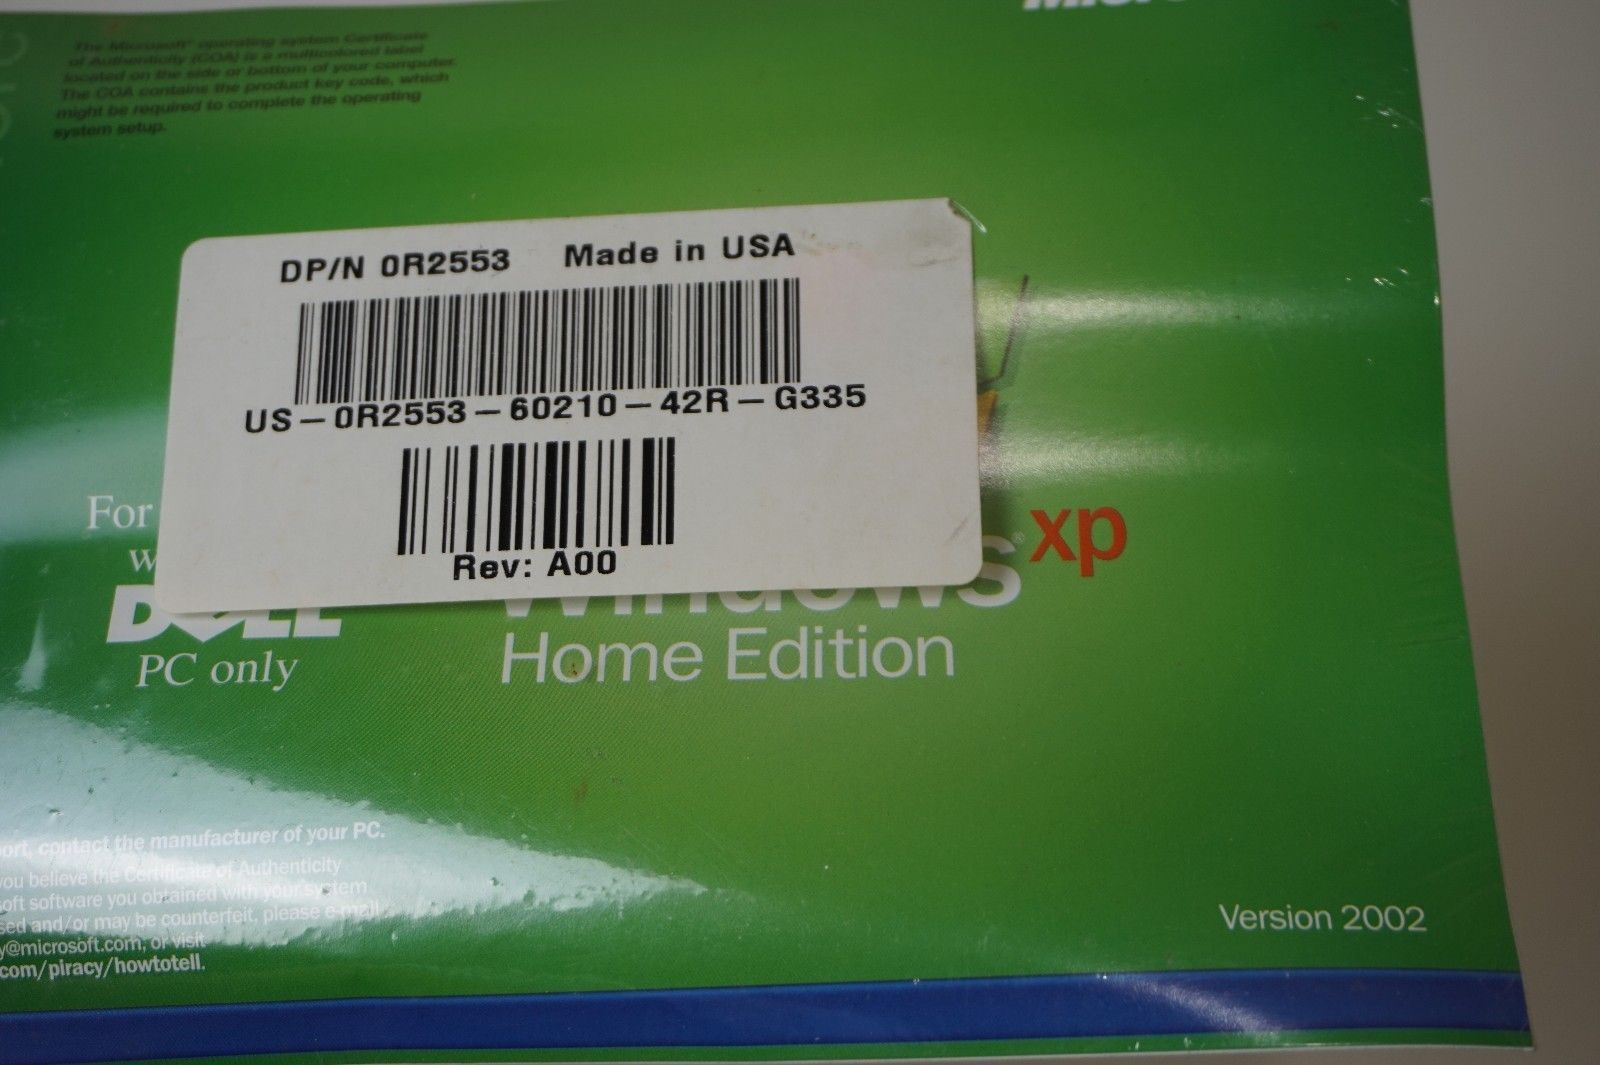 Sealed Windows XP Home Edition with Product and 38 similar items